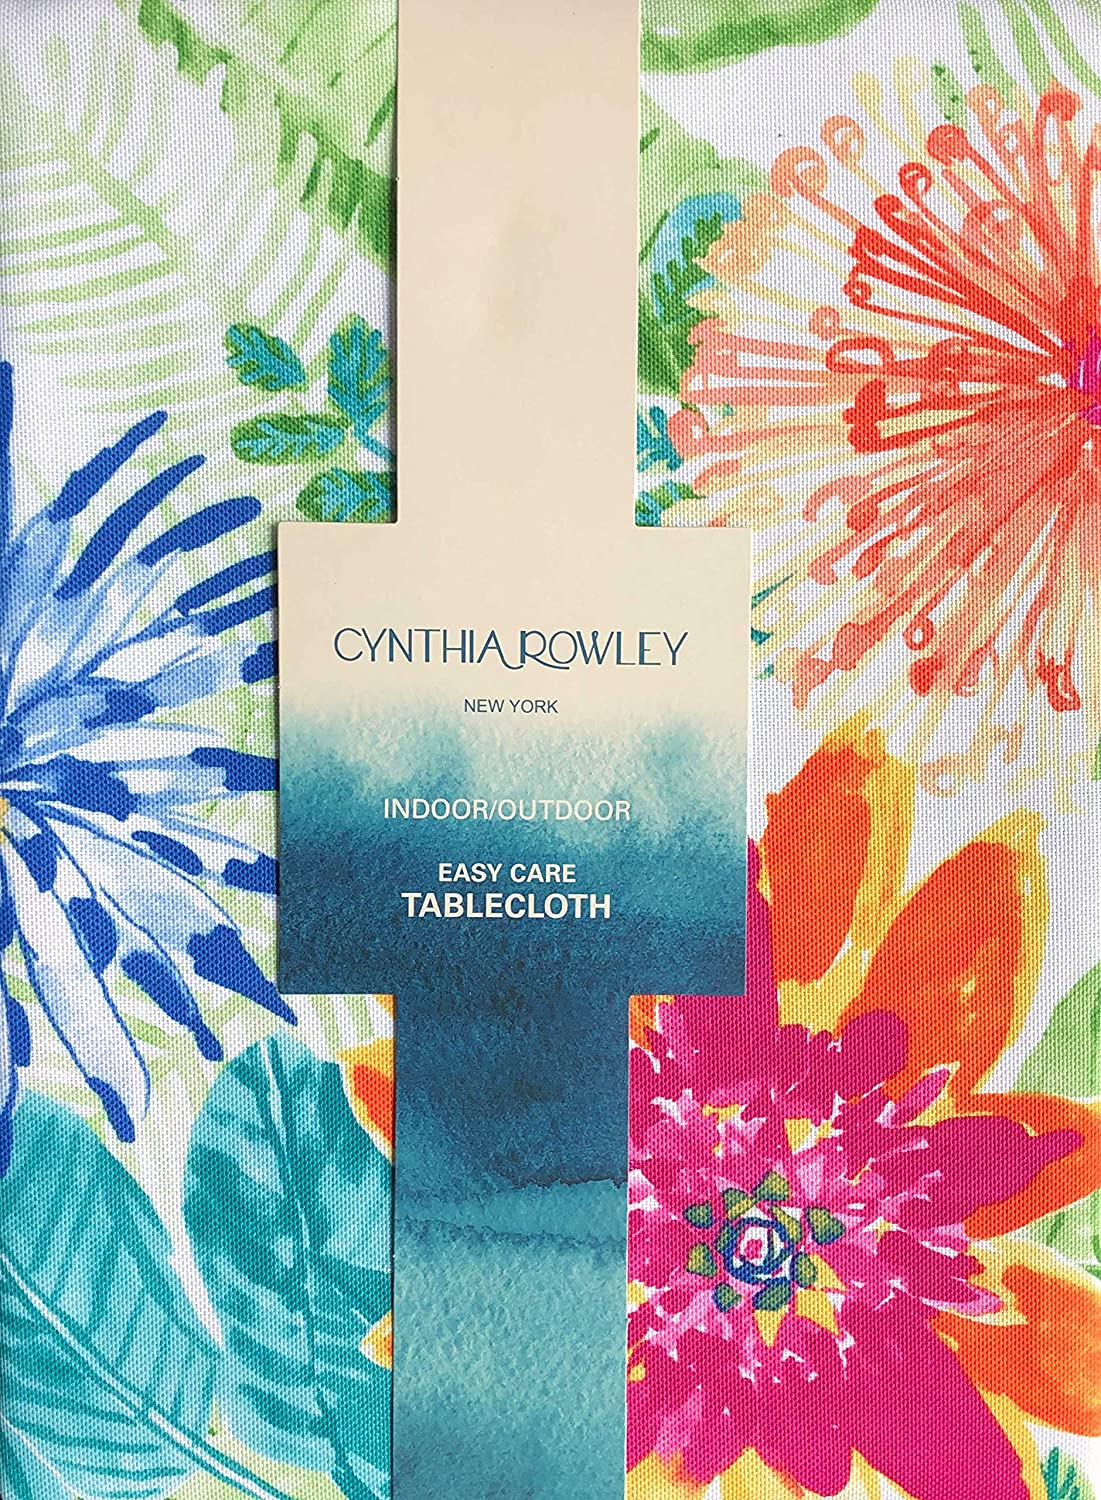 Cynthia Rowley Tablecloth Vivid Bright Summer Tropical Jungle Floral Pattern, Indoor/Outdoor Easy Care - Tortuga Floral, 70 Inches Round